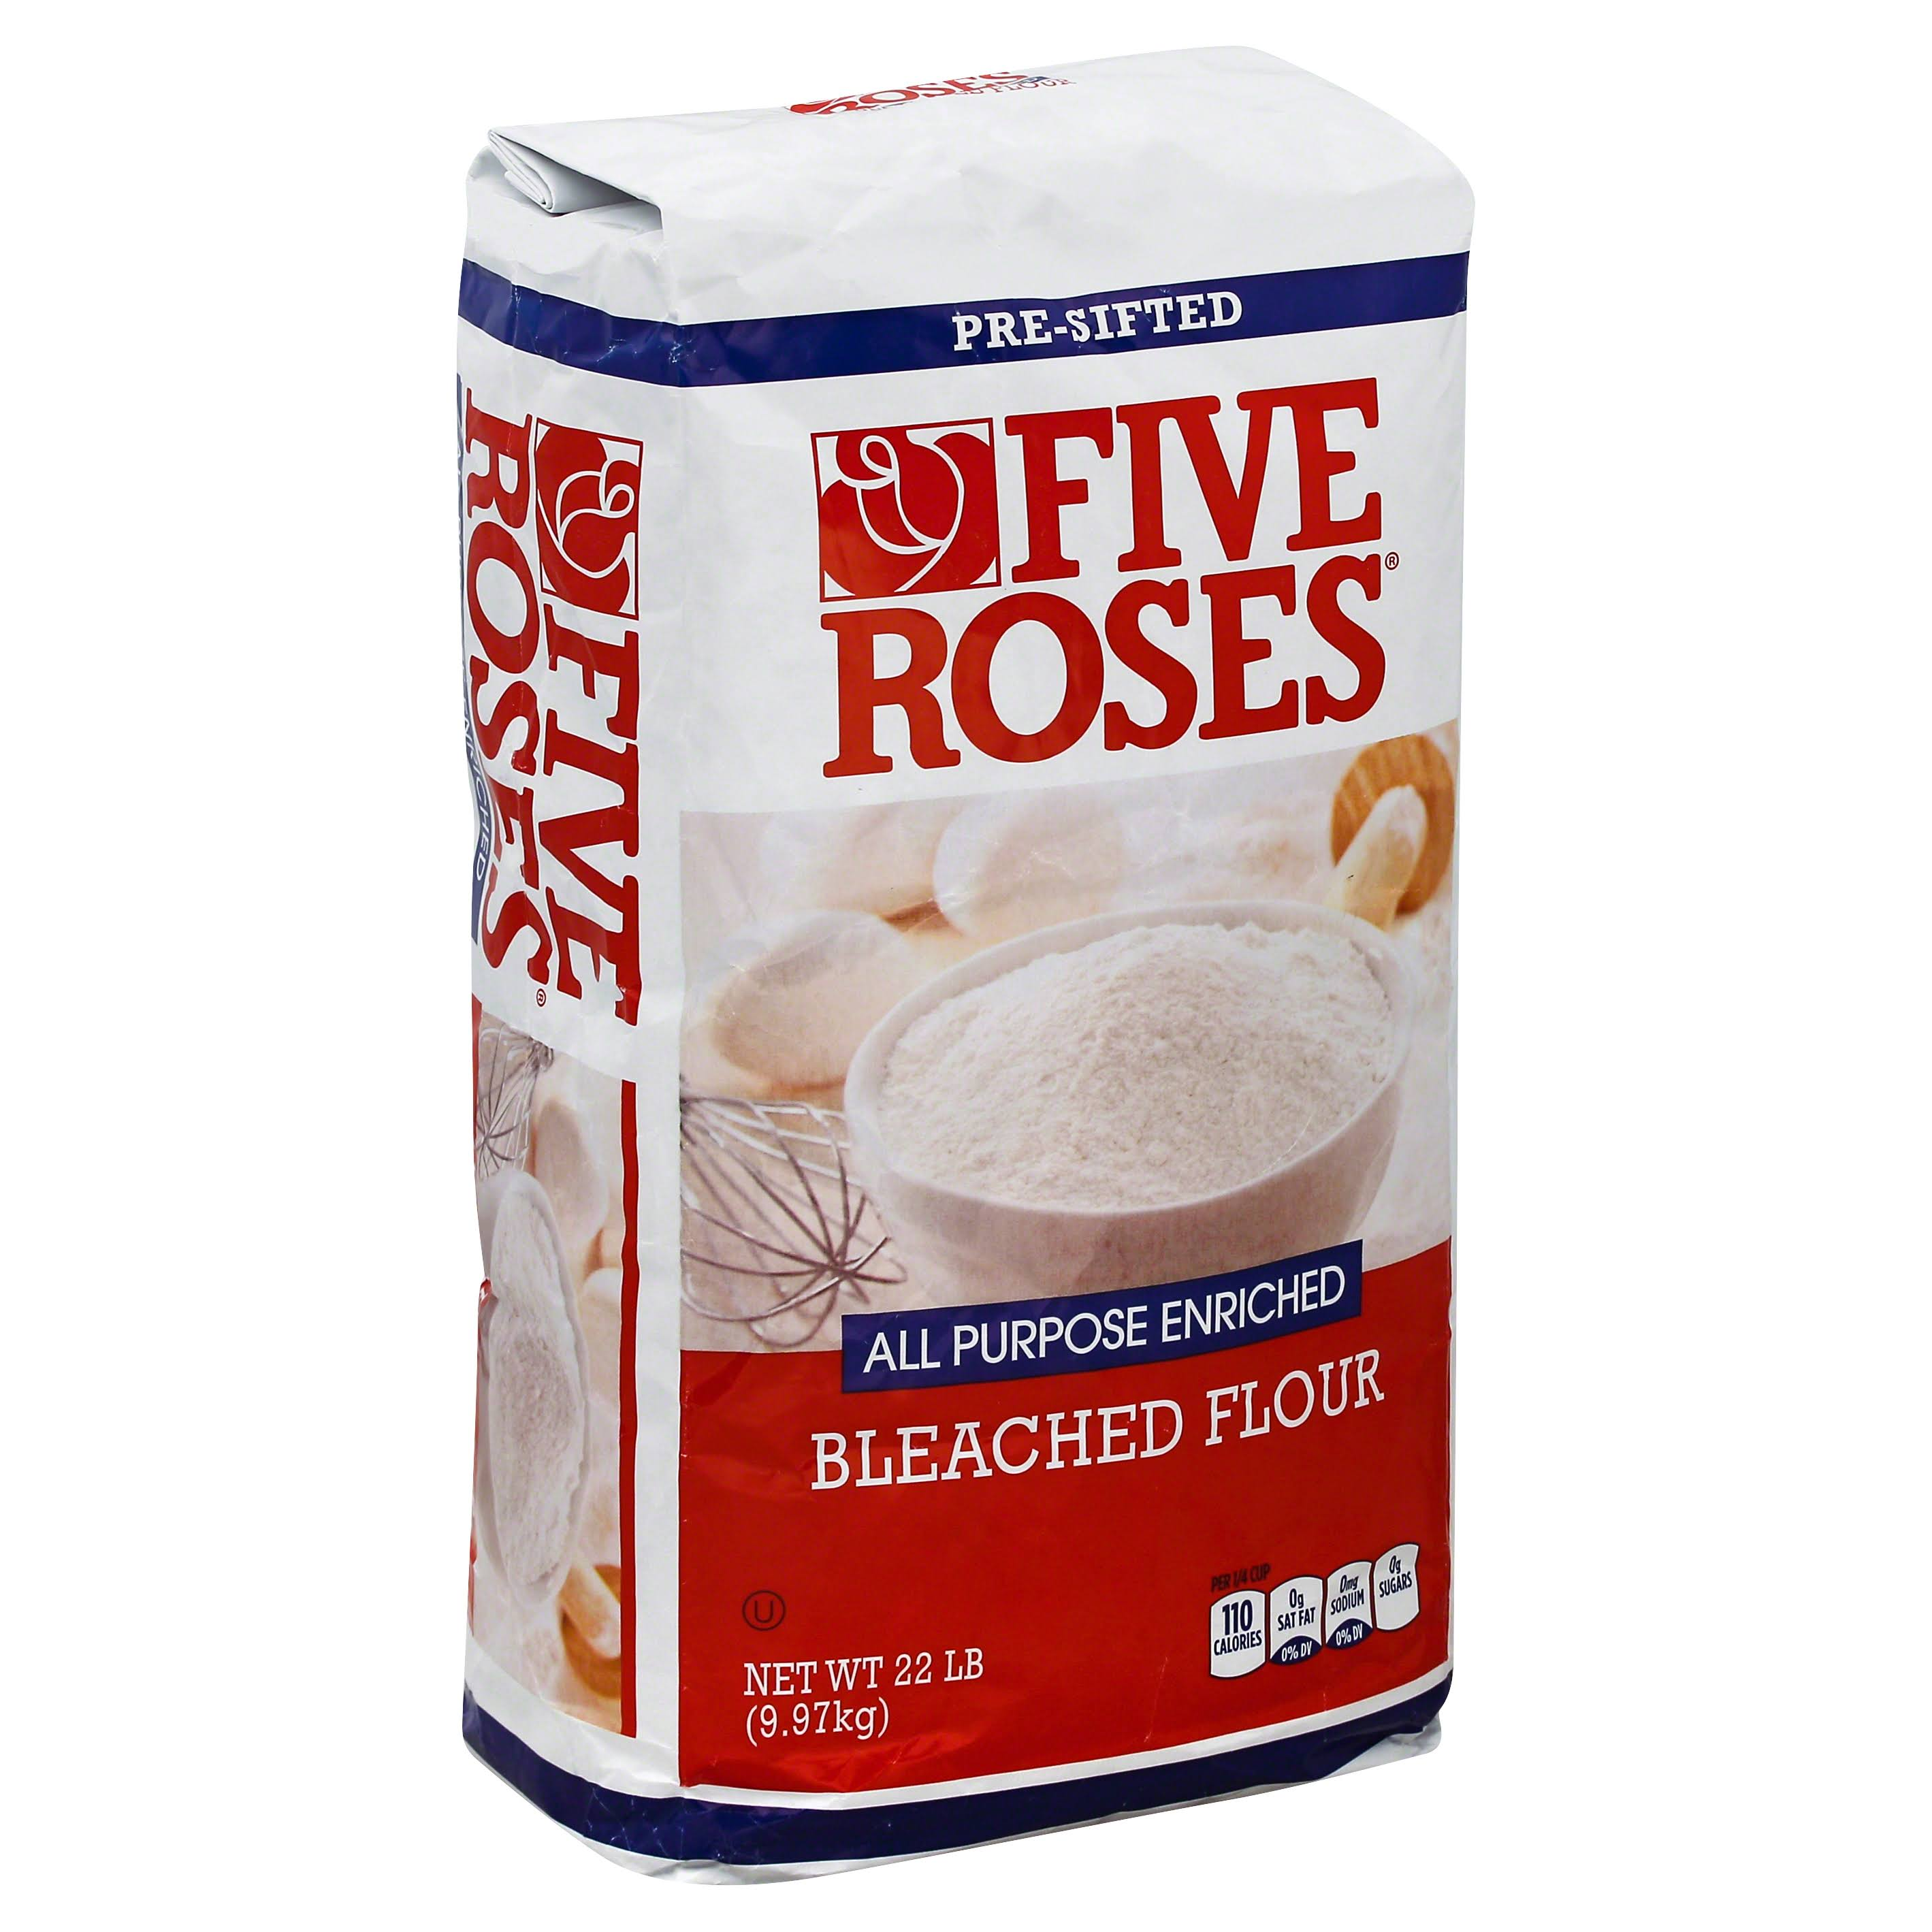 Five Roses All Purpose Enriched Bleached Flour